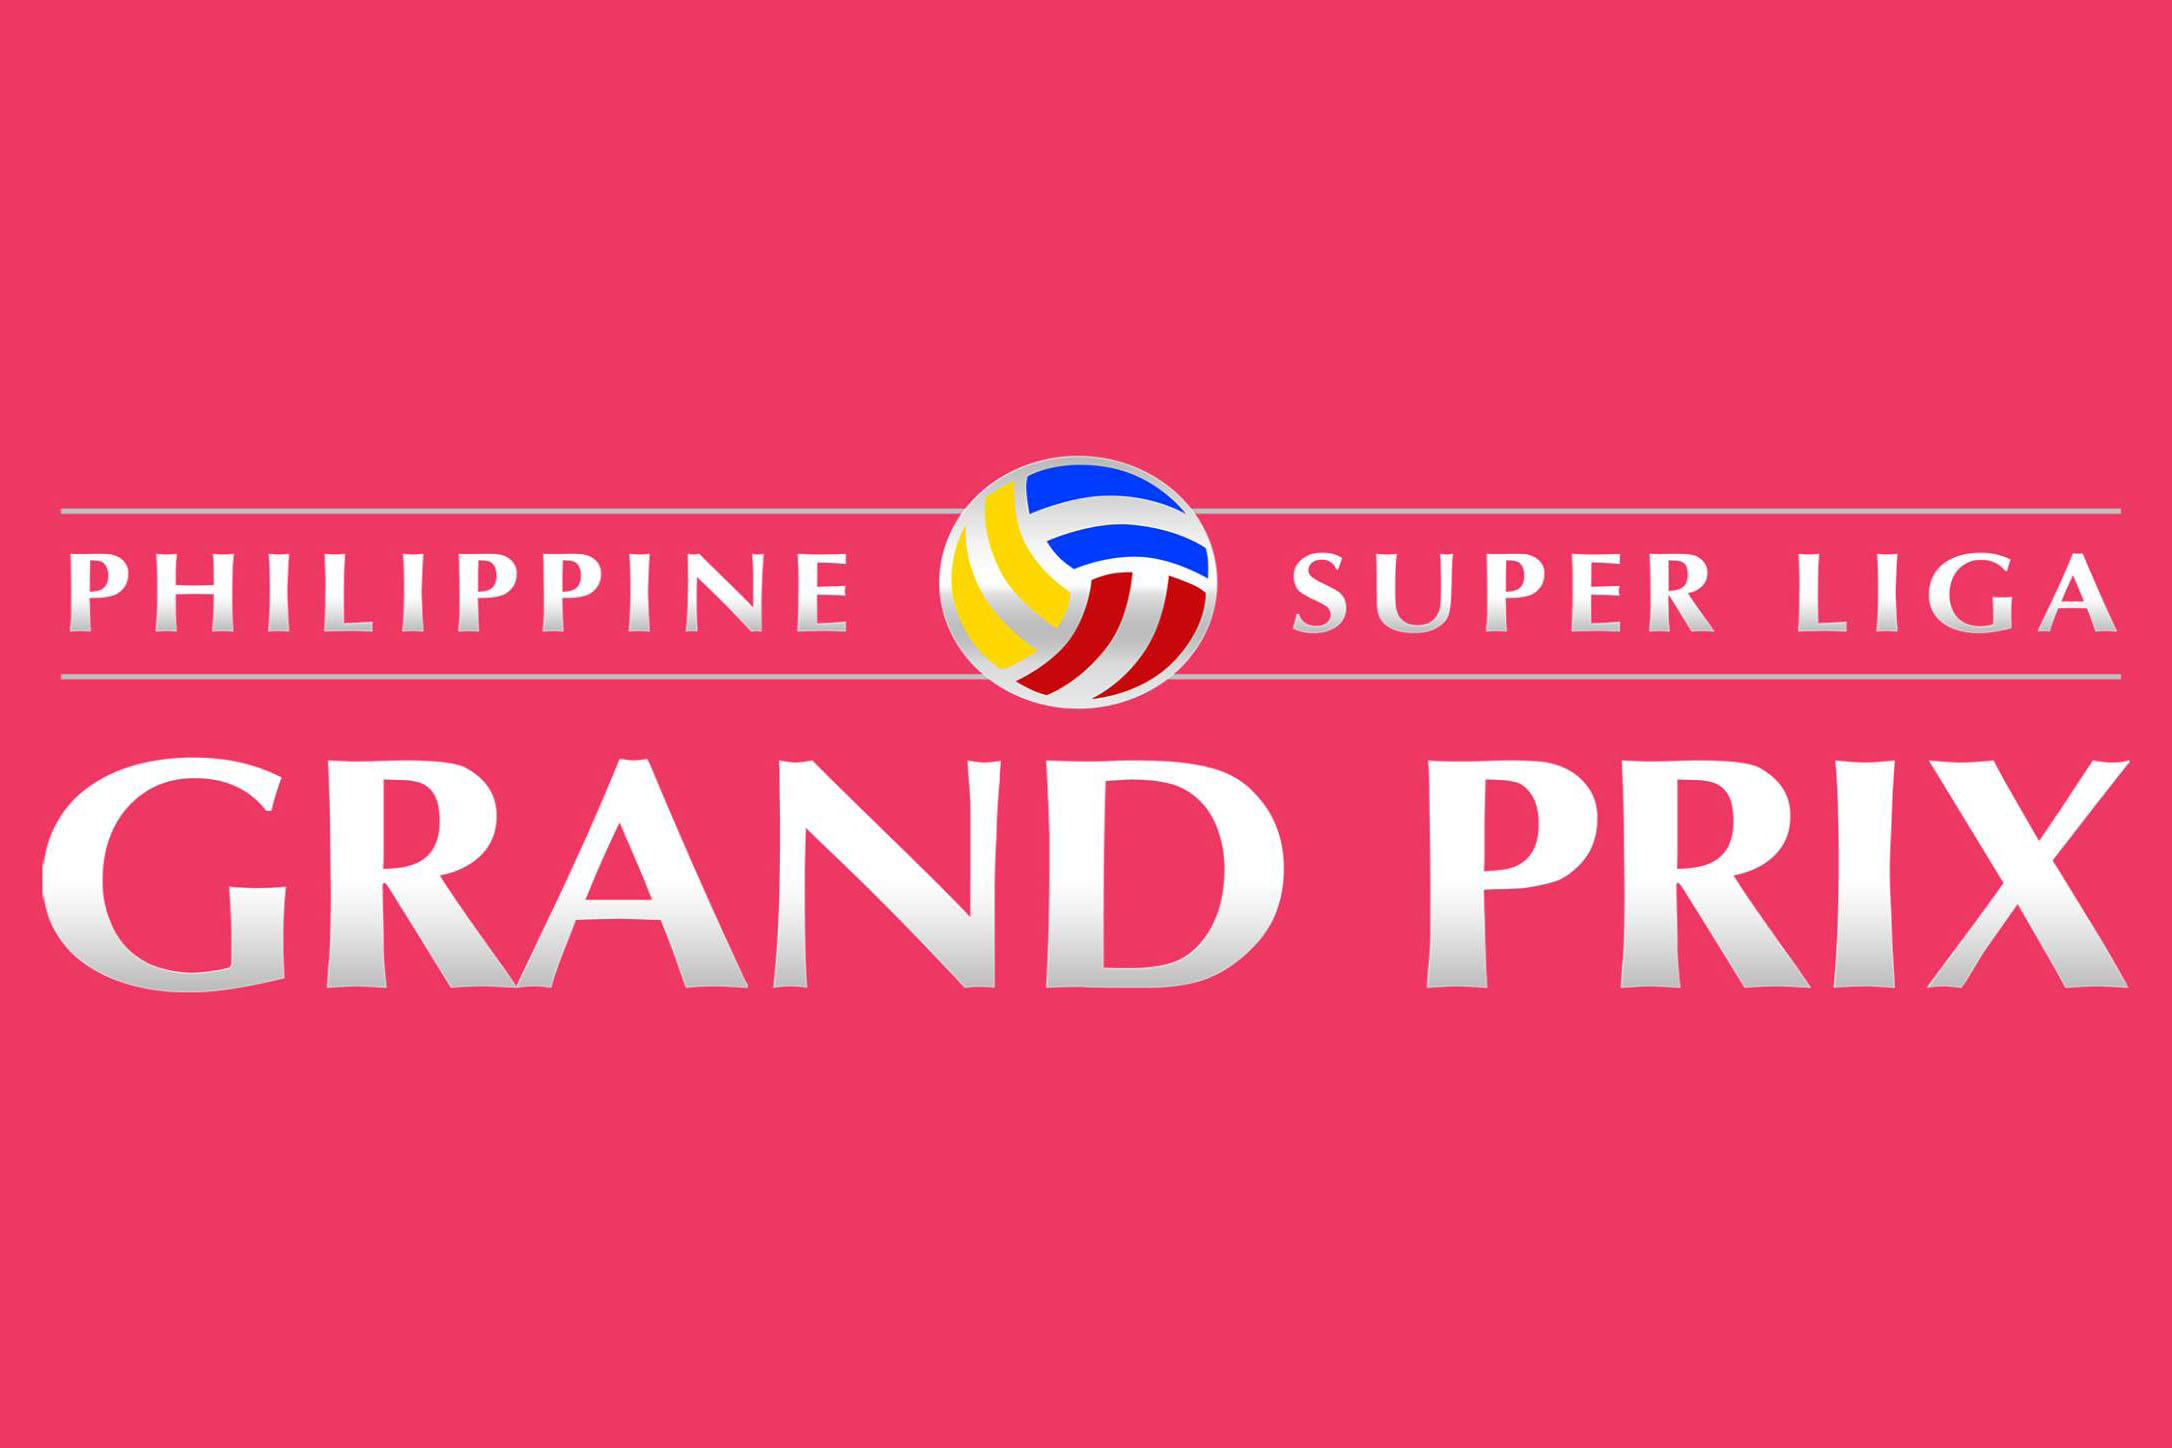 Now on its third edition, the Philippine Super Liga Grand Prix will showcase both local and foreign volleyball talents in the country. The PSL Grand Prix 2016 will begin on Oct. 8 at the FilOil Flying-V Centre in San Juan.